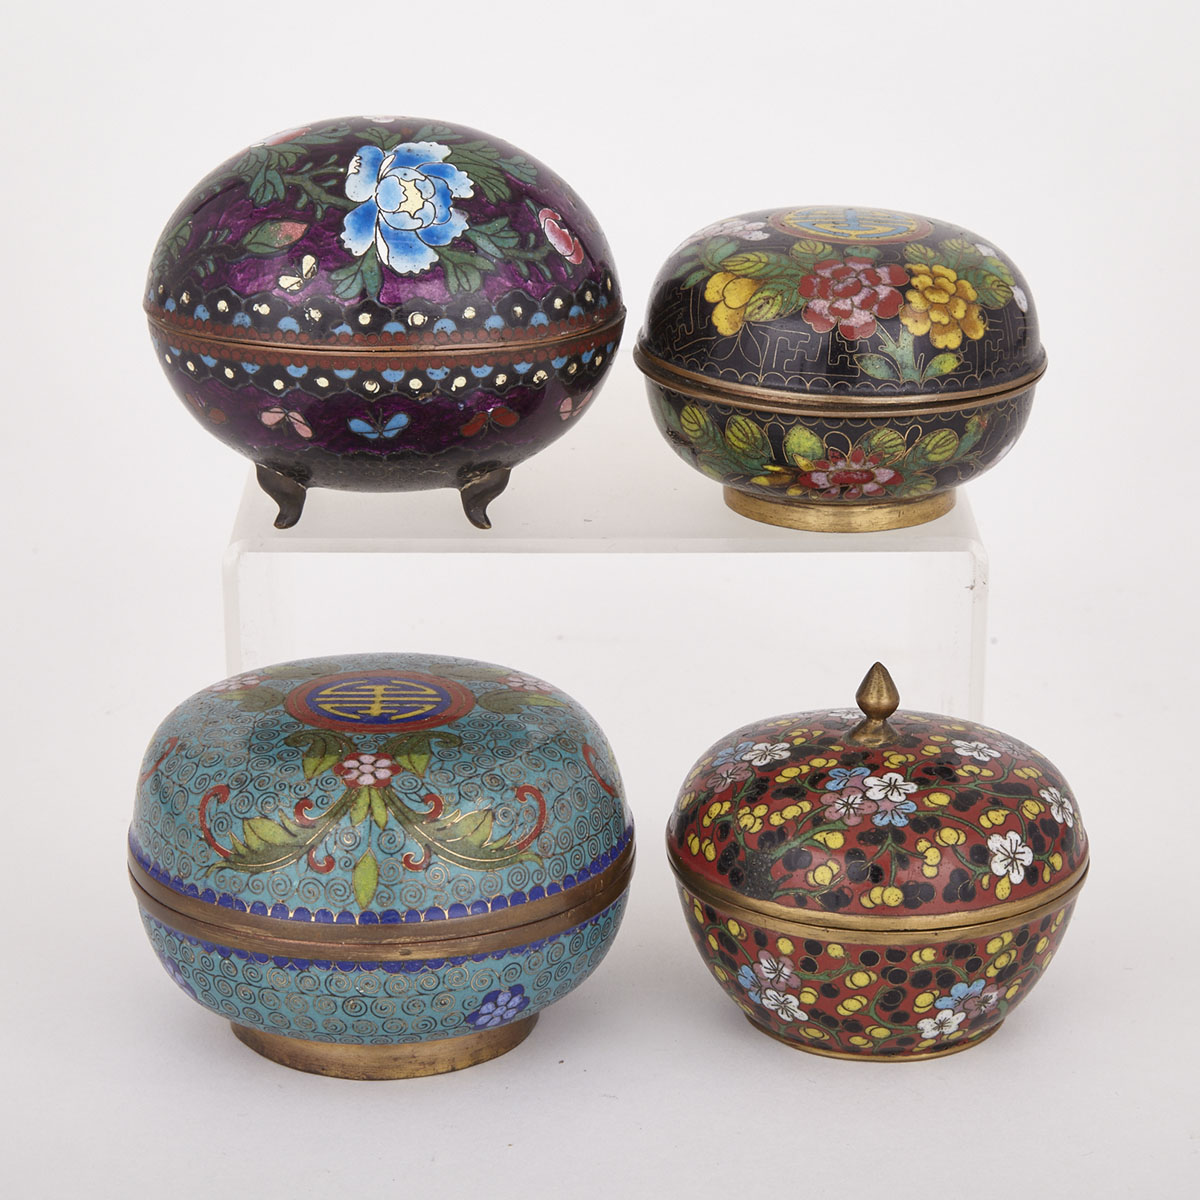 Four Chinese Cloisonne Boxes, Early 20th Century